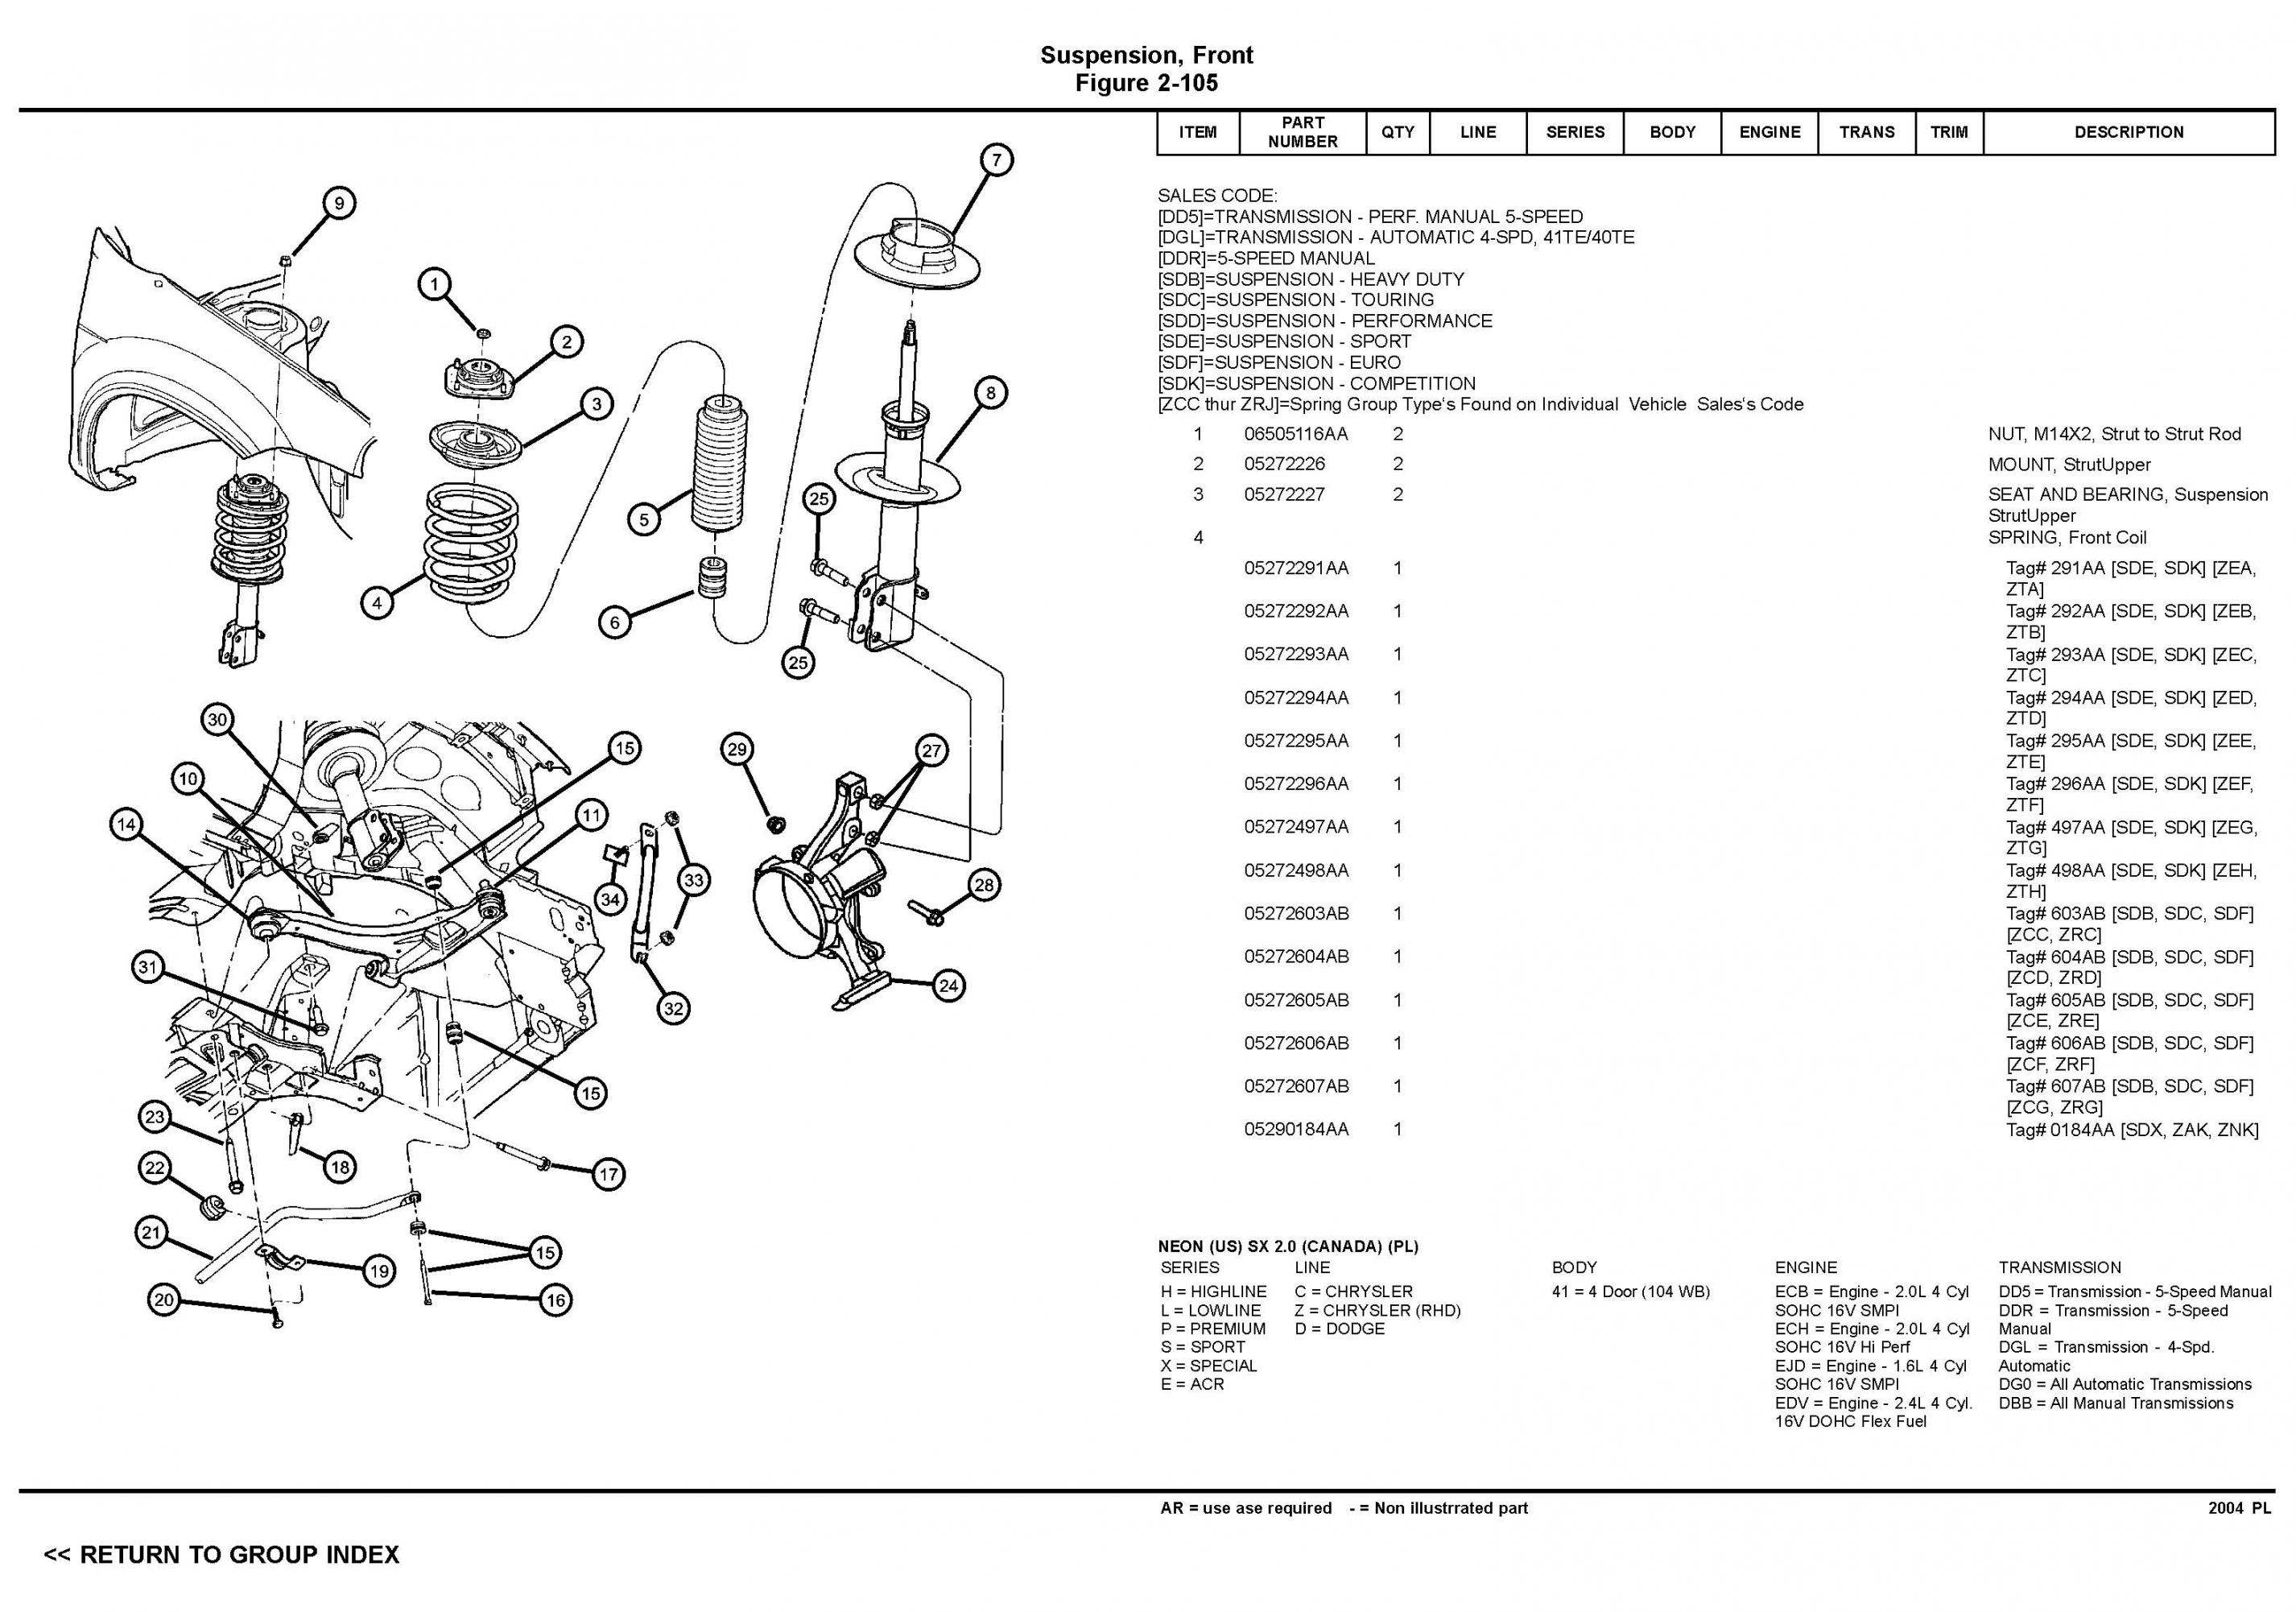 2002 Pt Cruiser Engine Diagram, 2002, Free Engine Image